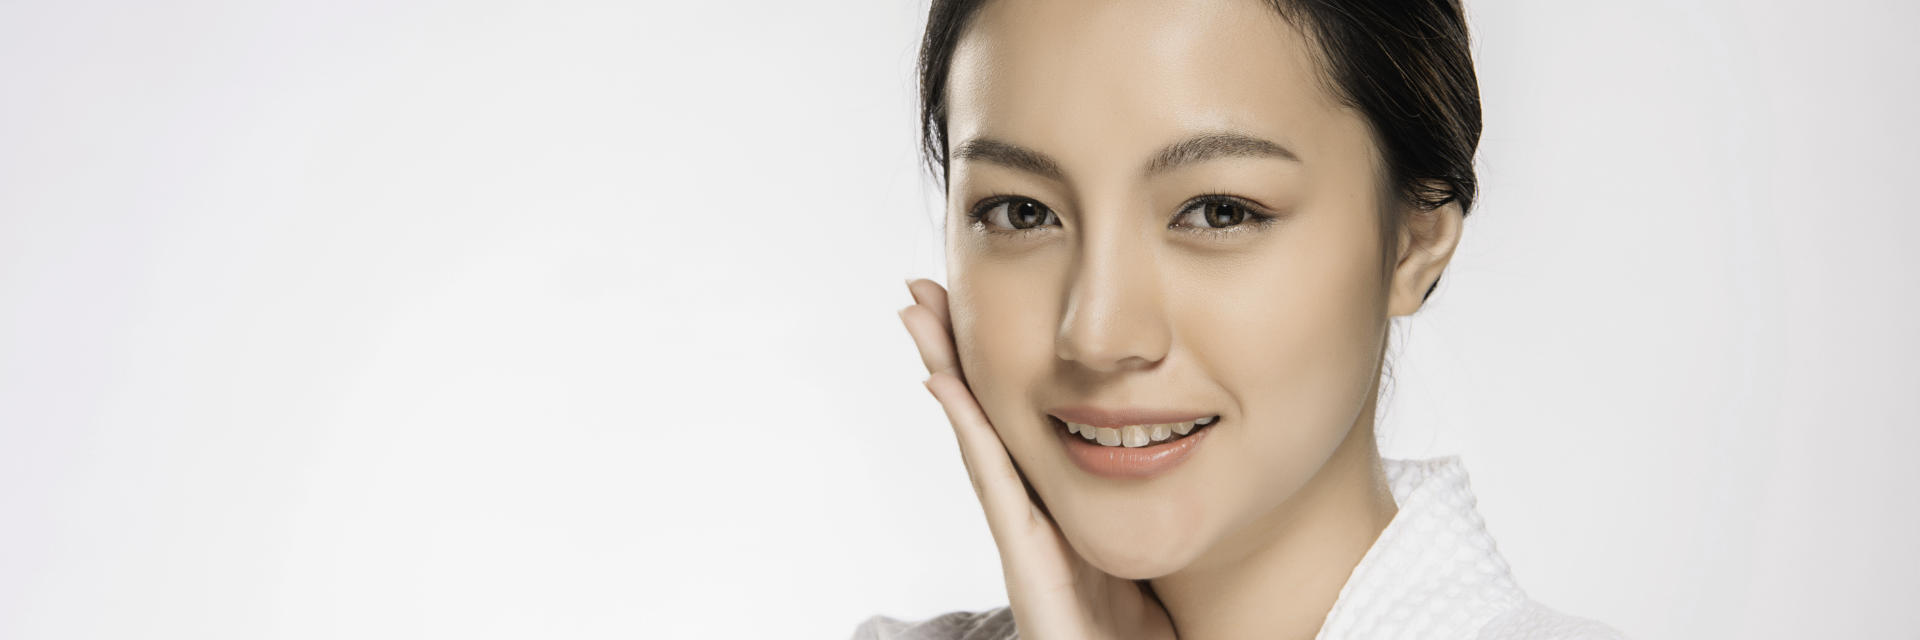 Beautiful face of a happy Asian woman after face cosmetic procedures touching her right cheek with her hand.